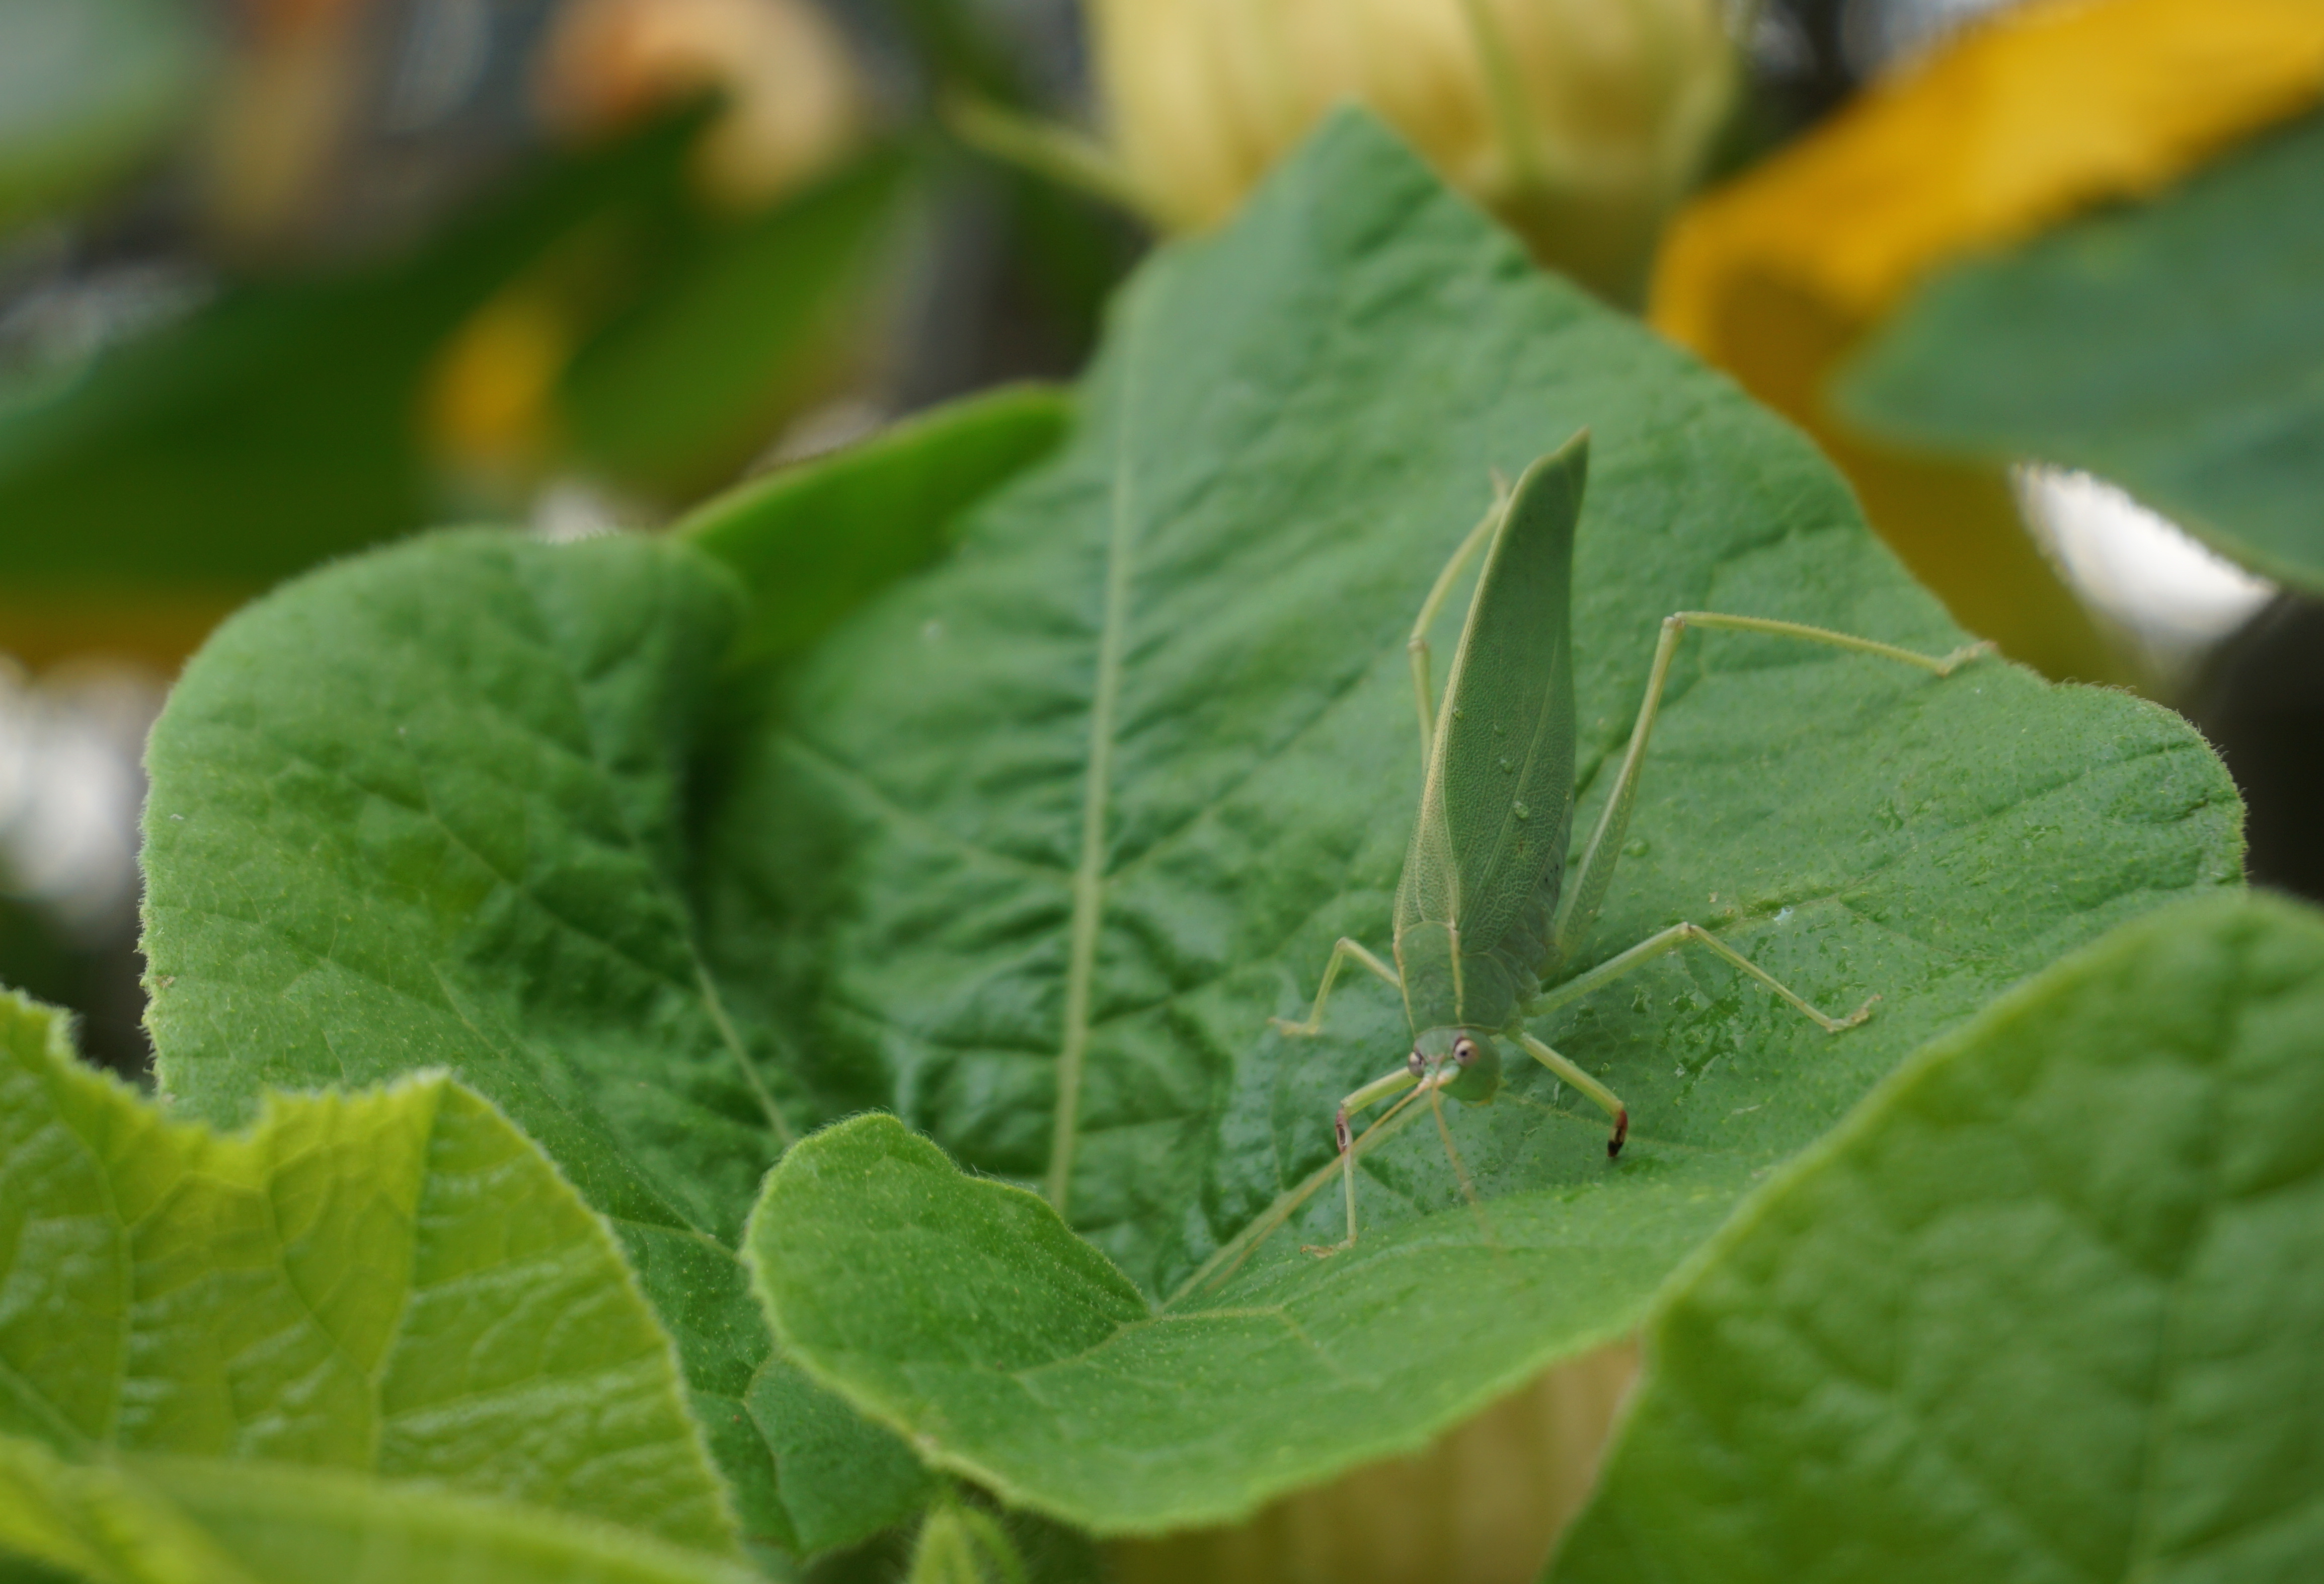 Gorgeous katydid